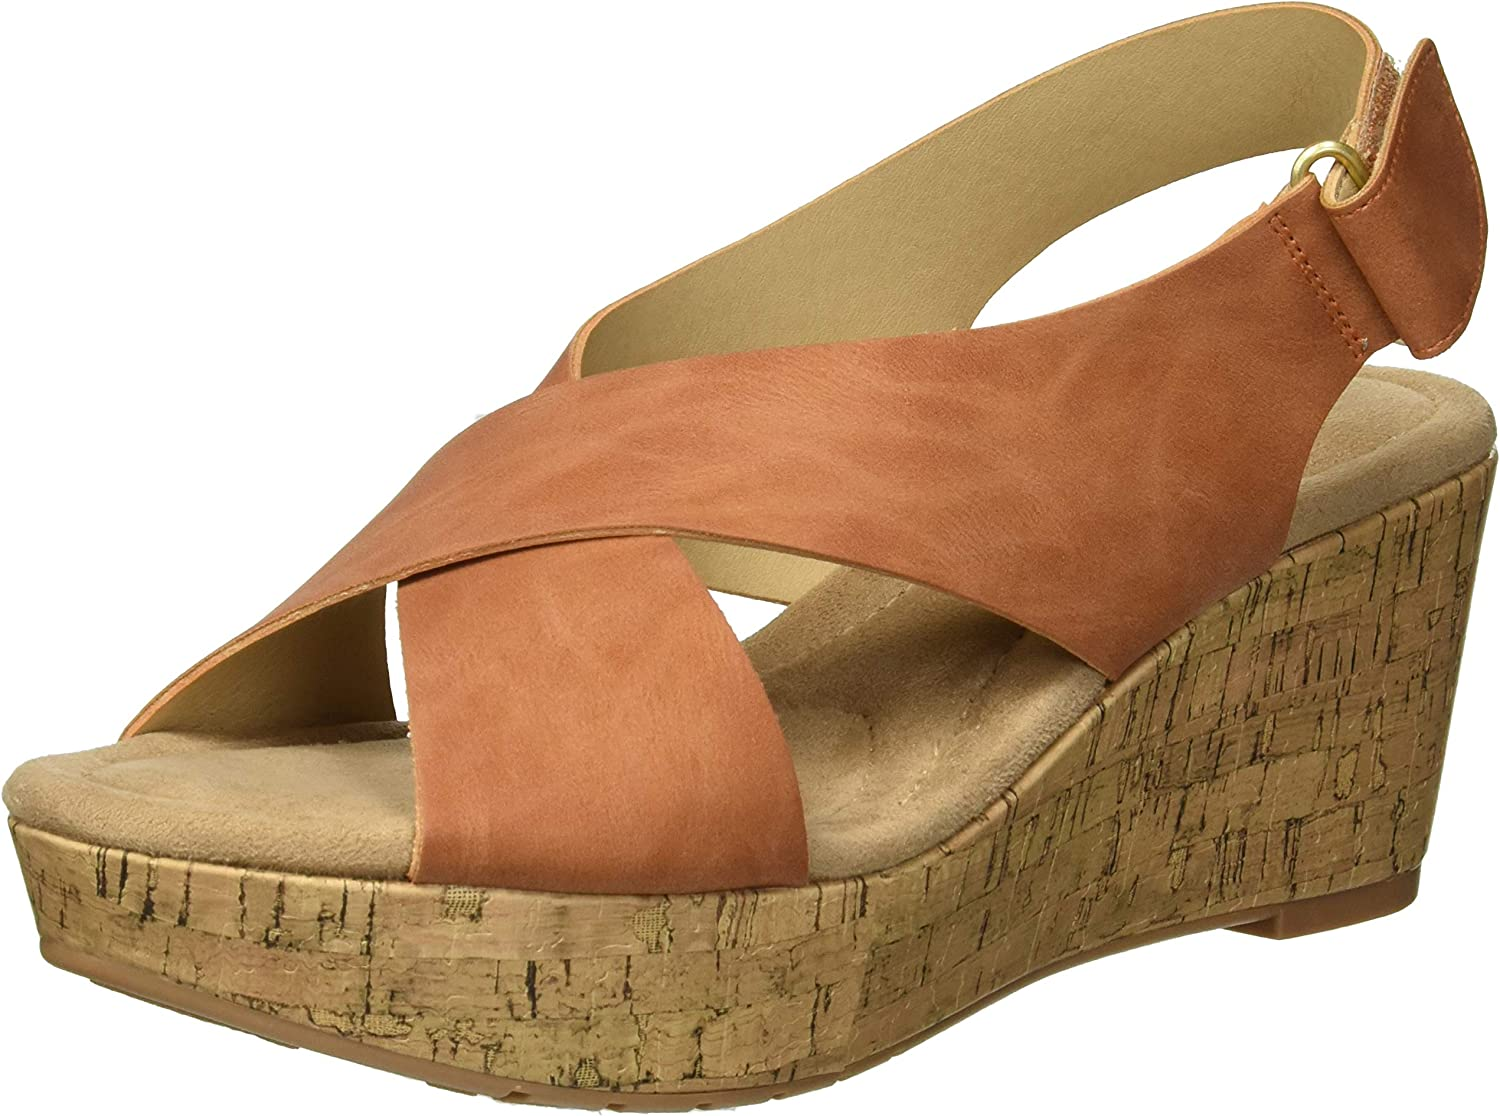 CL by Chinese Limited time cheap sale Laundry Women's Large-scale sale Wedge Dream Girl Sandal